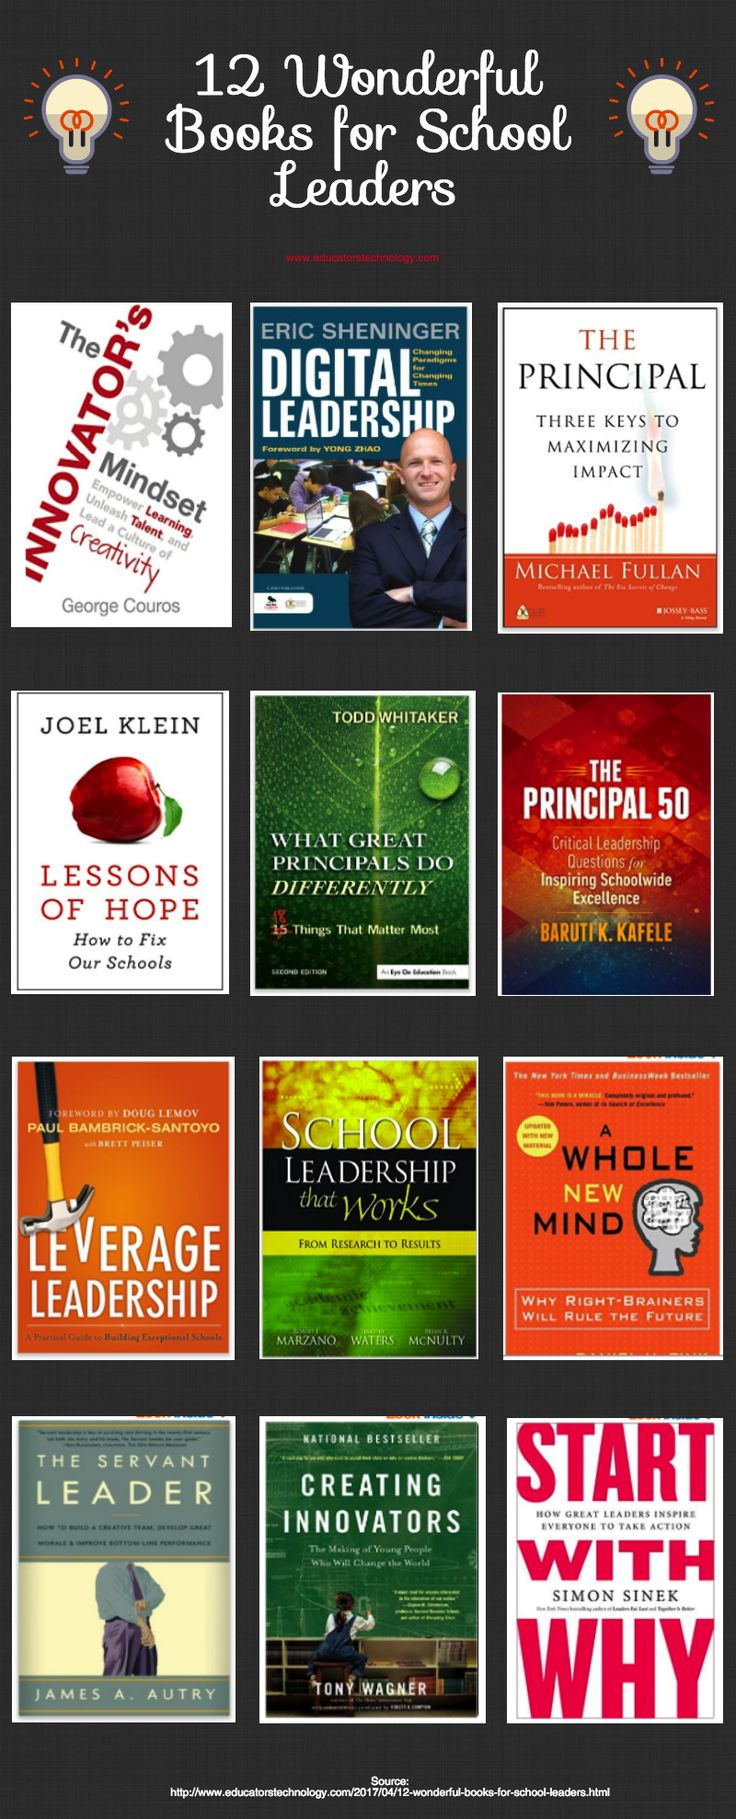 12 Wonderful Books for School Leaders